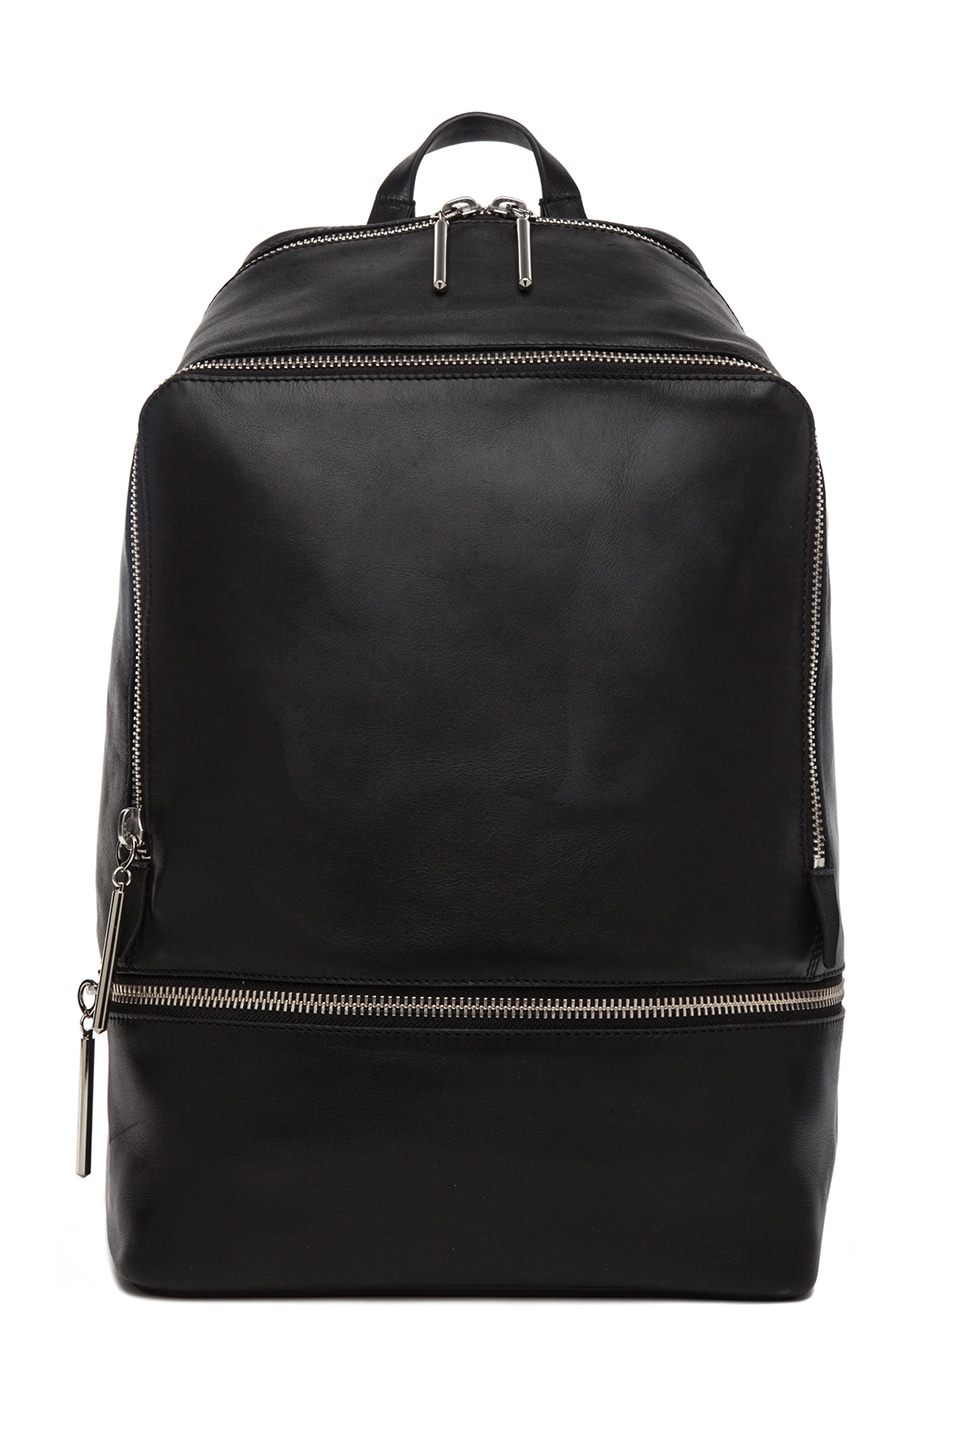 Image 1 of 3.1 phillip lim Zip Around Back Pack in Black